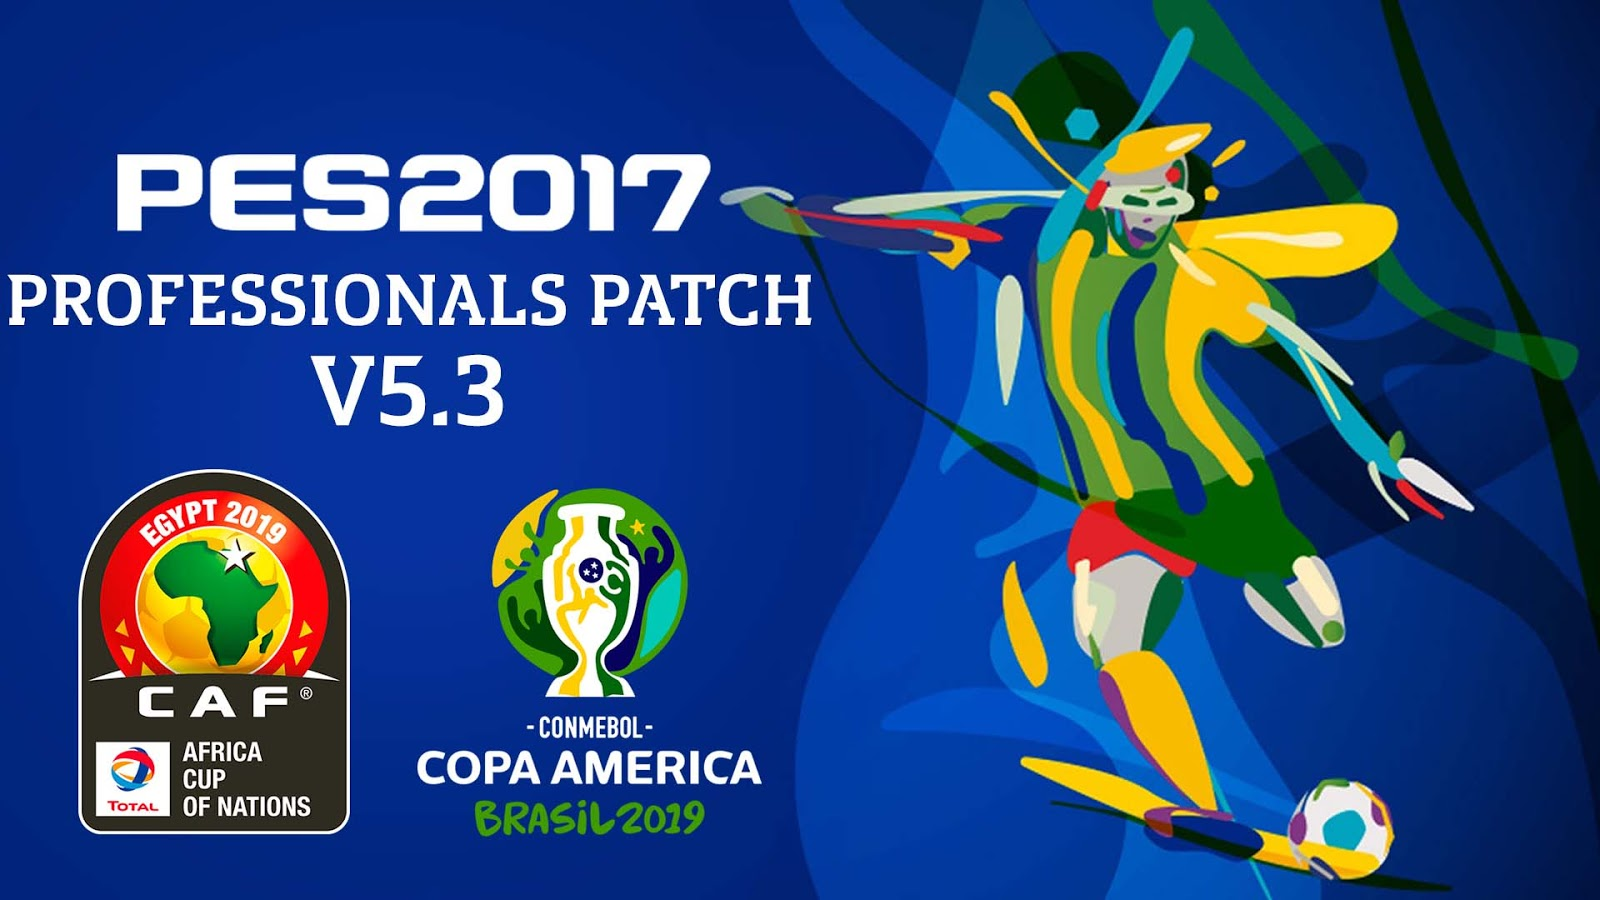 PES 2017 Professionals Patch V5.3 CAN Edition 2019 - Released #27/6/2019